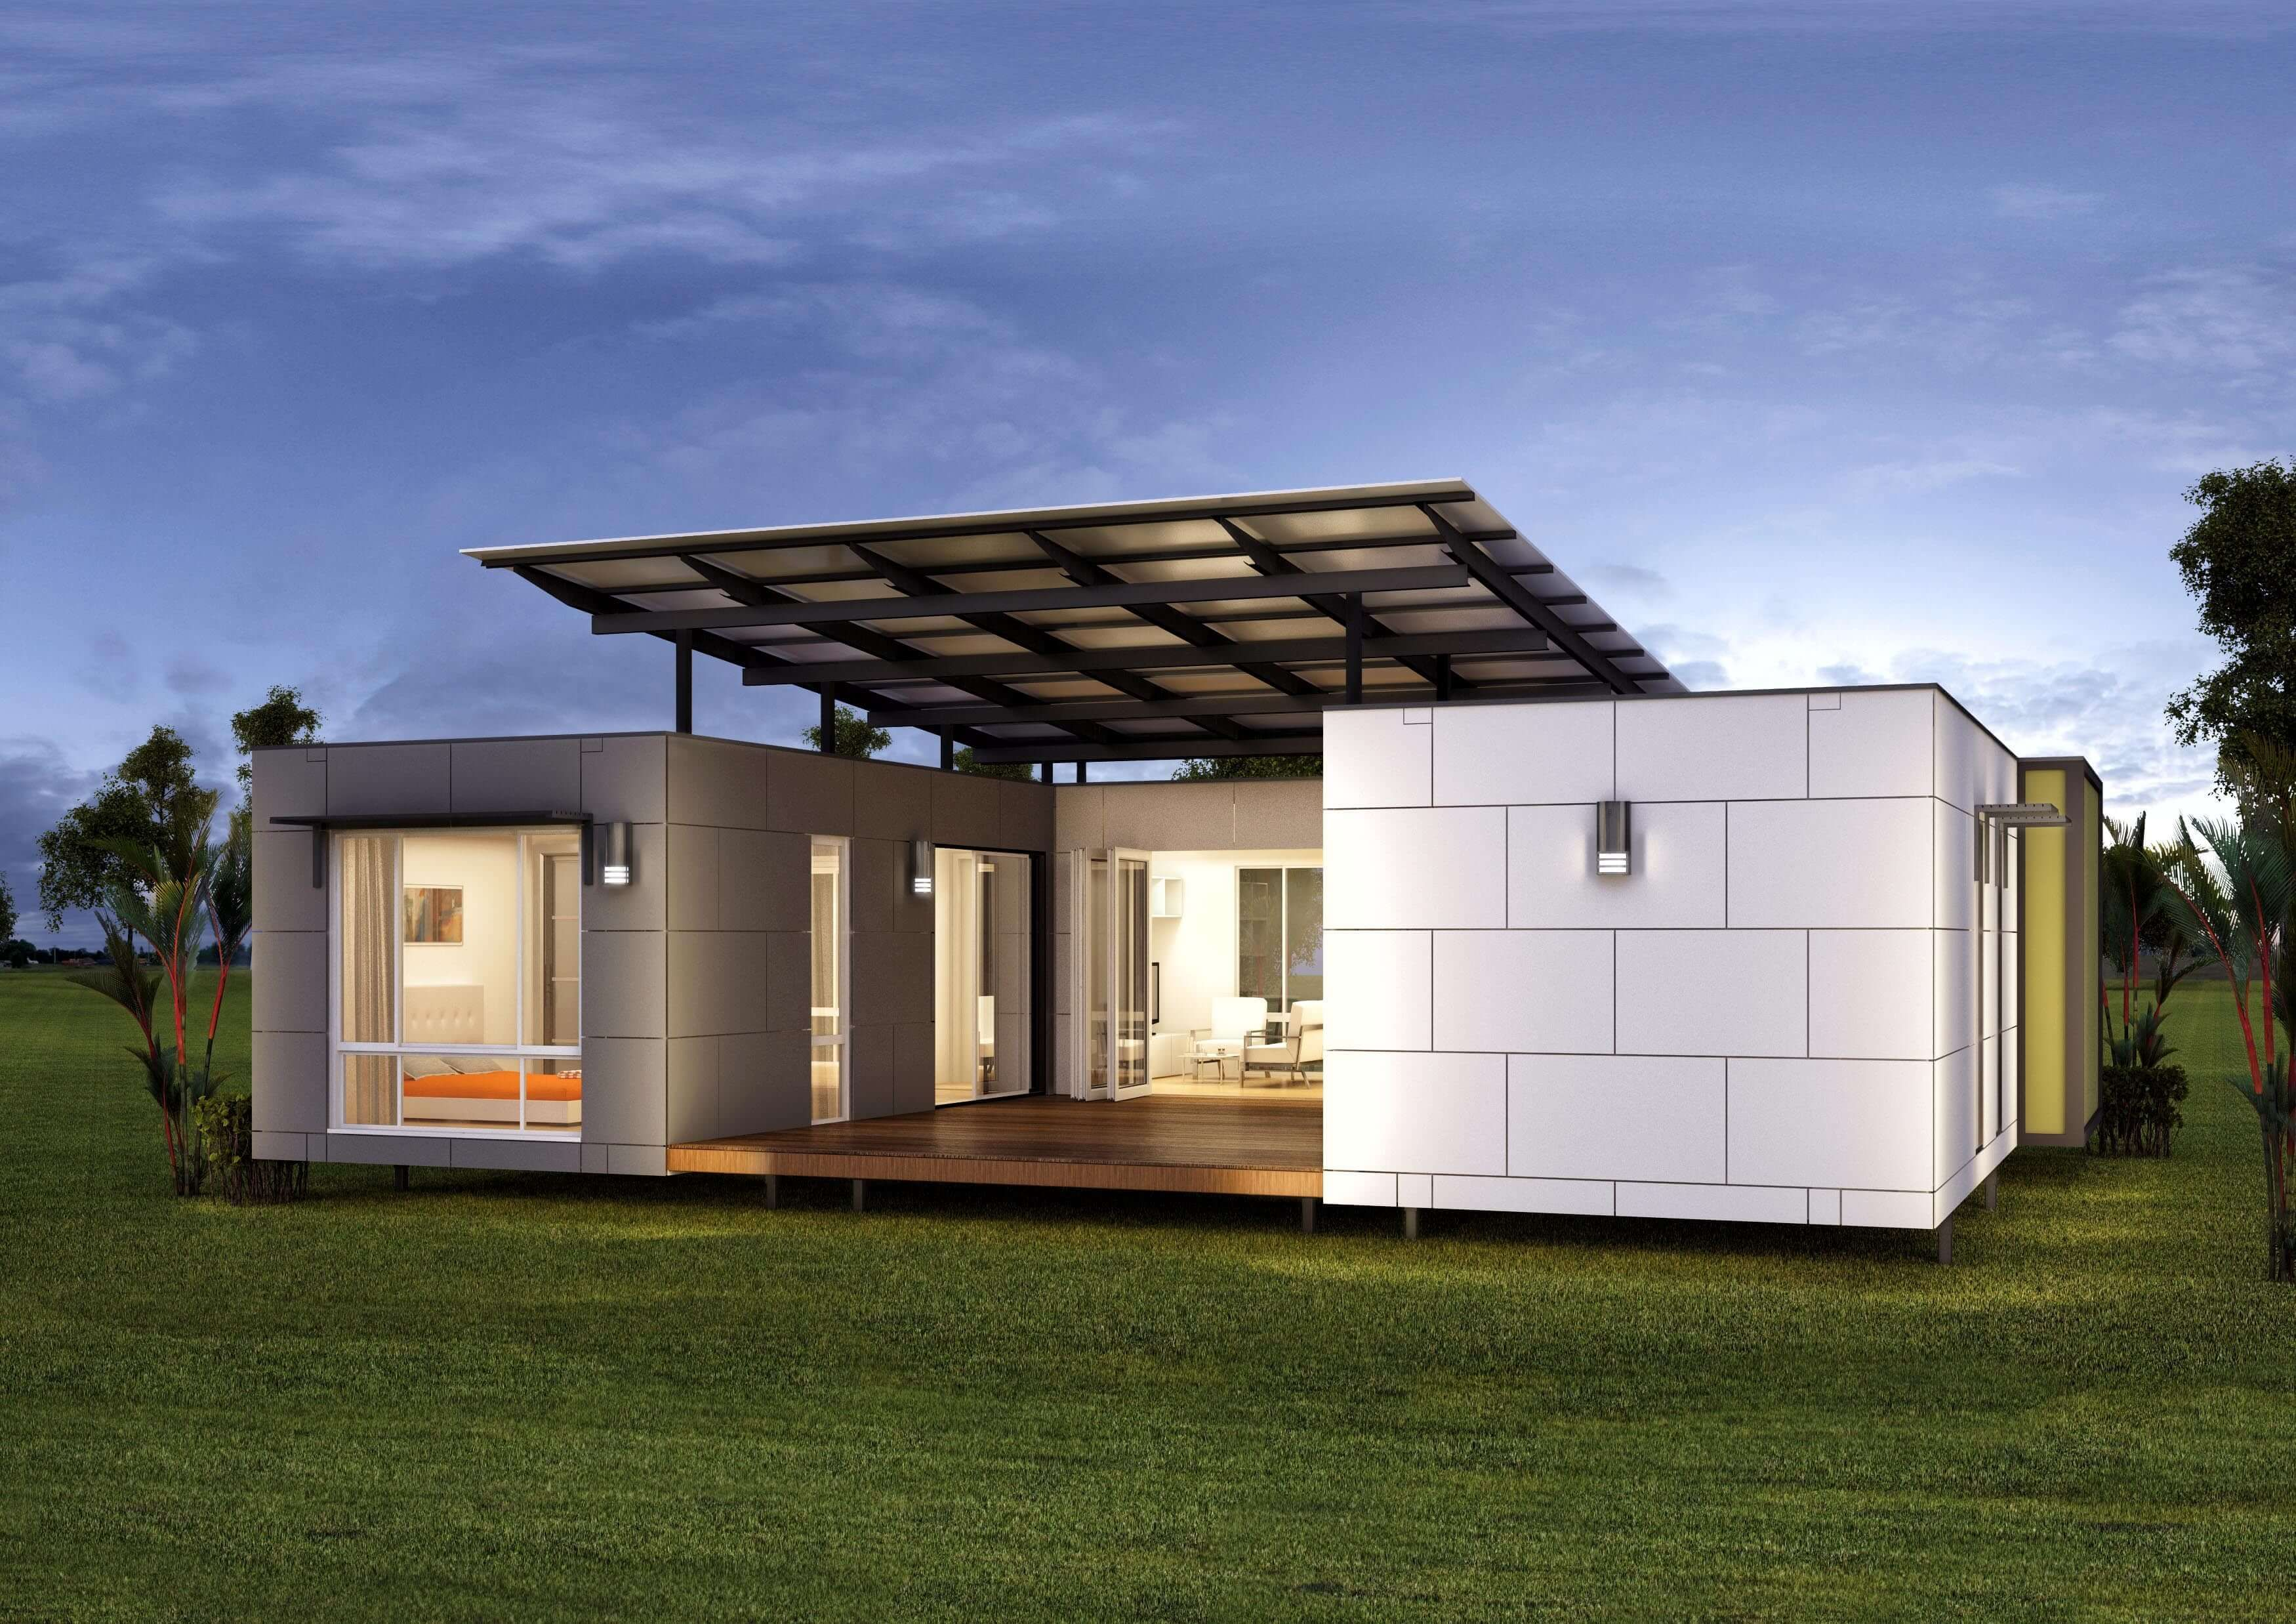 prefab homes ideas | Cheap prefab homes | Pinterest | Prefab, Modern on small mobile homes, tiny houses, tiny newspapers, small portable homes, tiny folding homes, tiny travel campers, tiny kit homes, tiny block homes, tiny stylish homes, tiny traditional homes, tiny one level homes, tiny homes built, glass tiny homes, tiny mediterranean homes, tiny home in a box, tiny studio homes, tiny home packages, little mobile homes, tiny cedar homes, tiny movable homes,